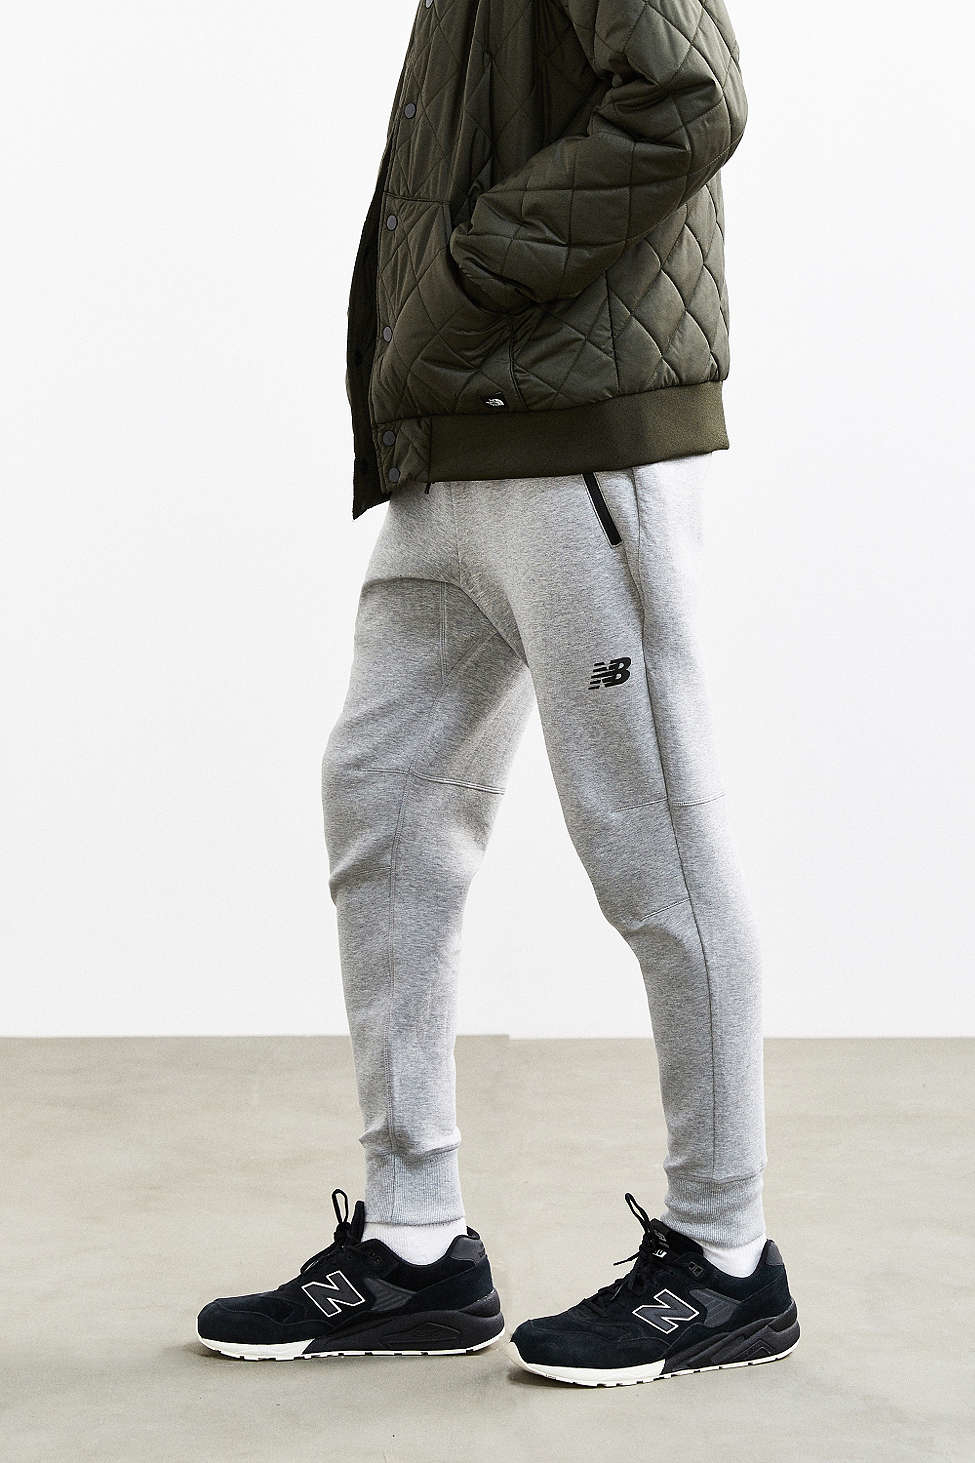 8a8f4c9acd041 New Balance Sport Style Bonded Fleece Sweatpant in Gray for Men - Lyst